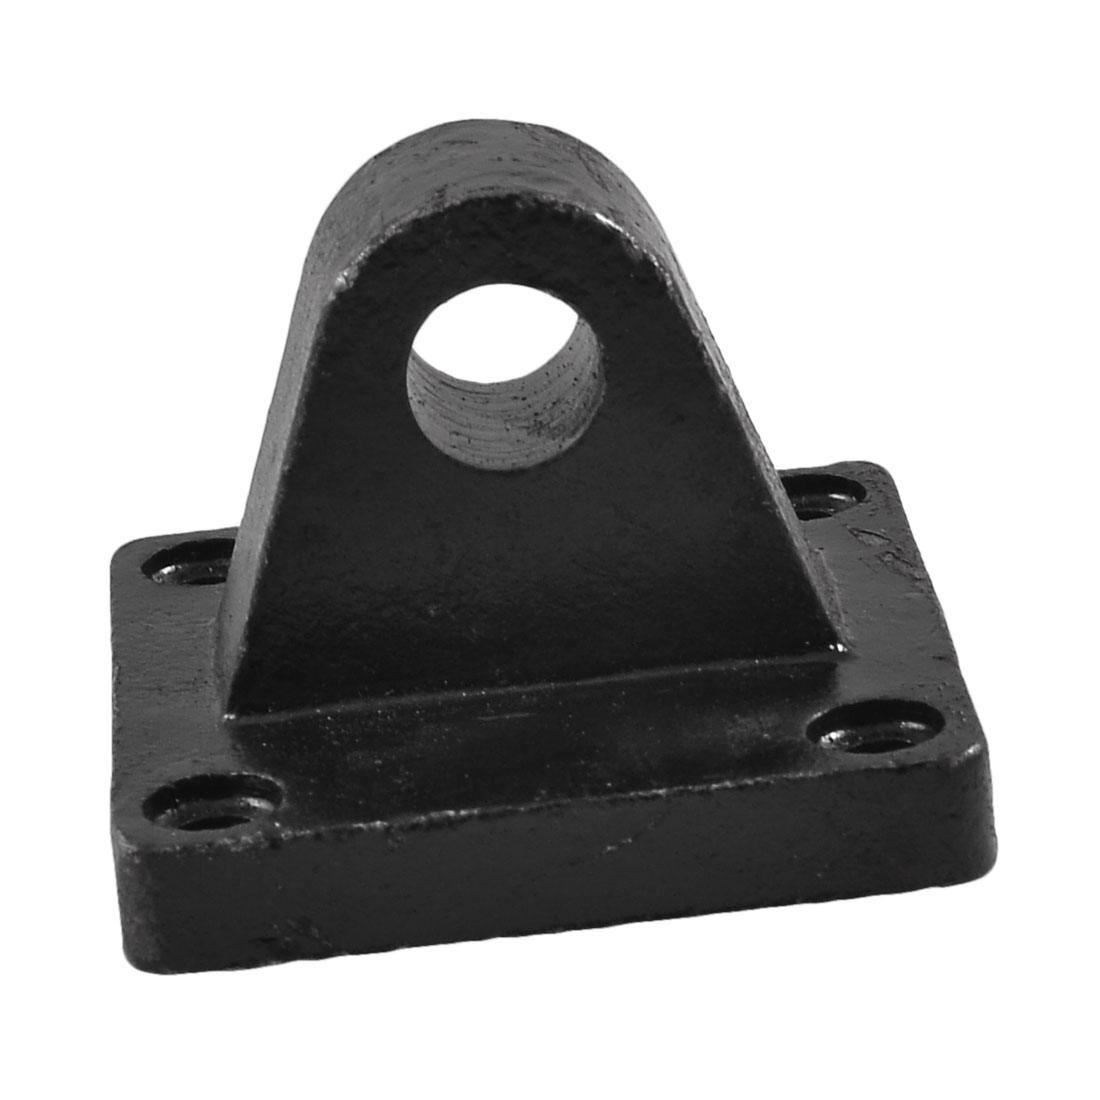 14mm Dia Pin Hole Pivot Clevis Mounting Bracket for Air Cylinder